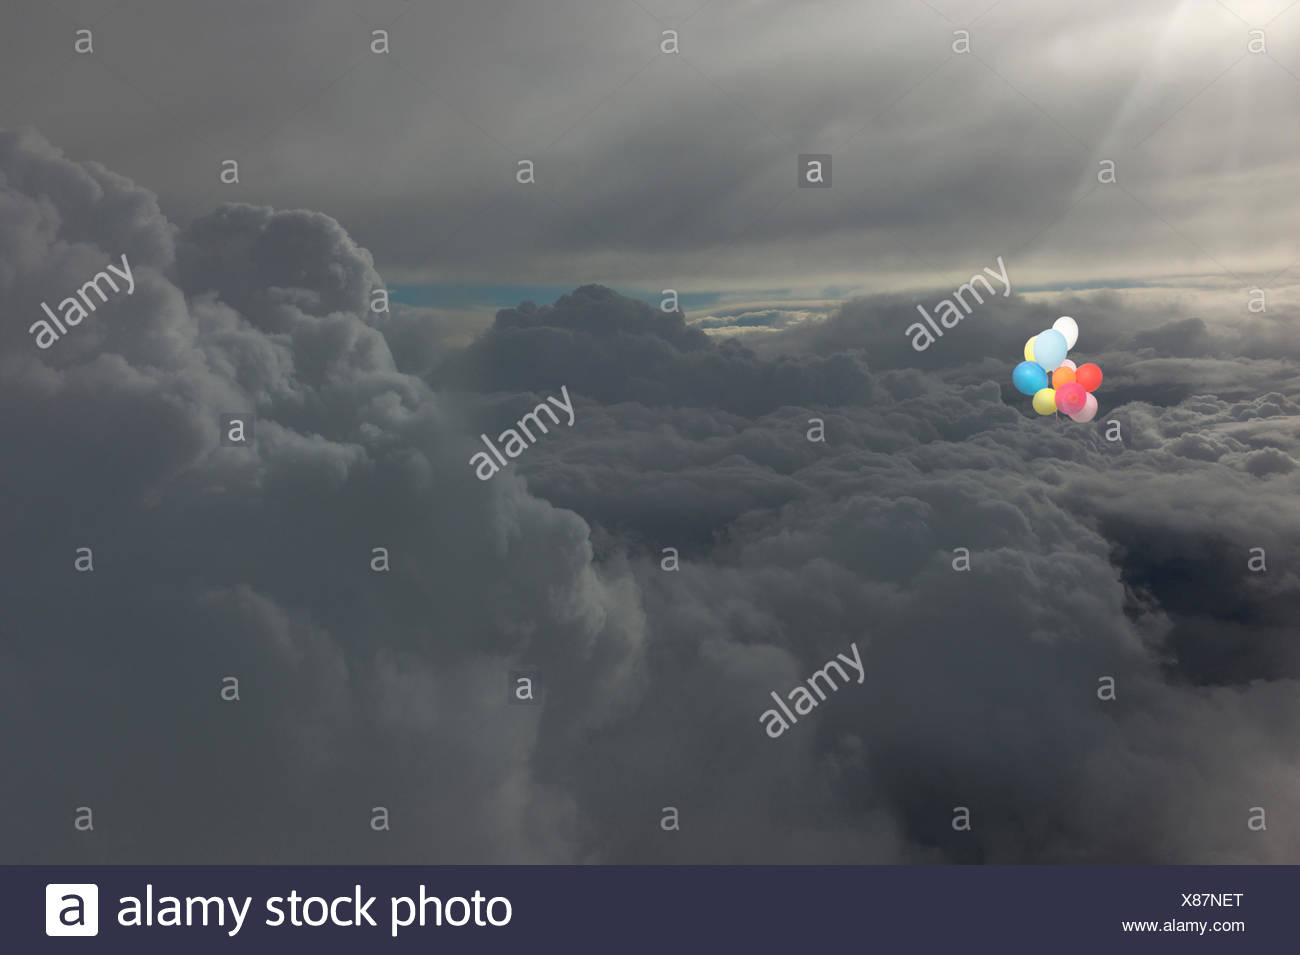 Bunch of multi-colored balloons flying in the sky above the clouds - Stock Image